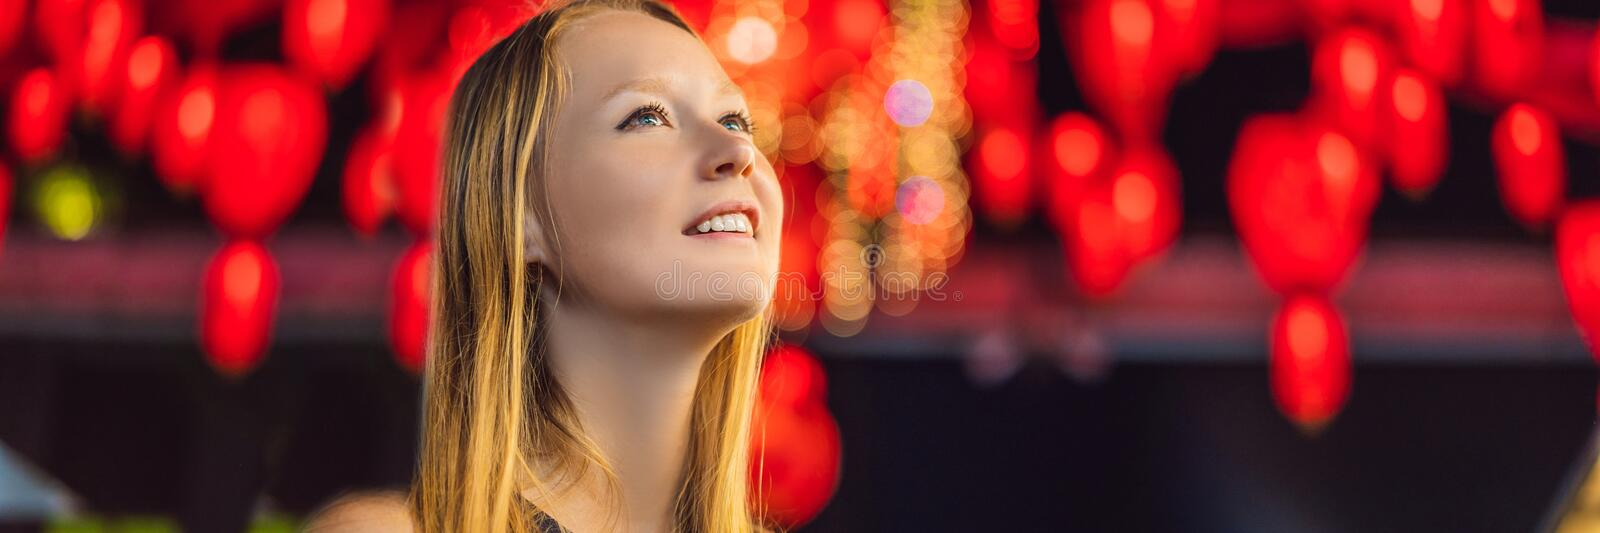 Woman celebrate Chinese New Year look at Chinese red lanterns BANNER, LONG FORMAT royalty free stock photos